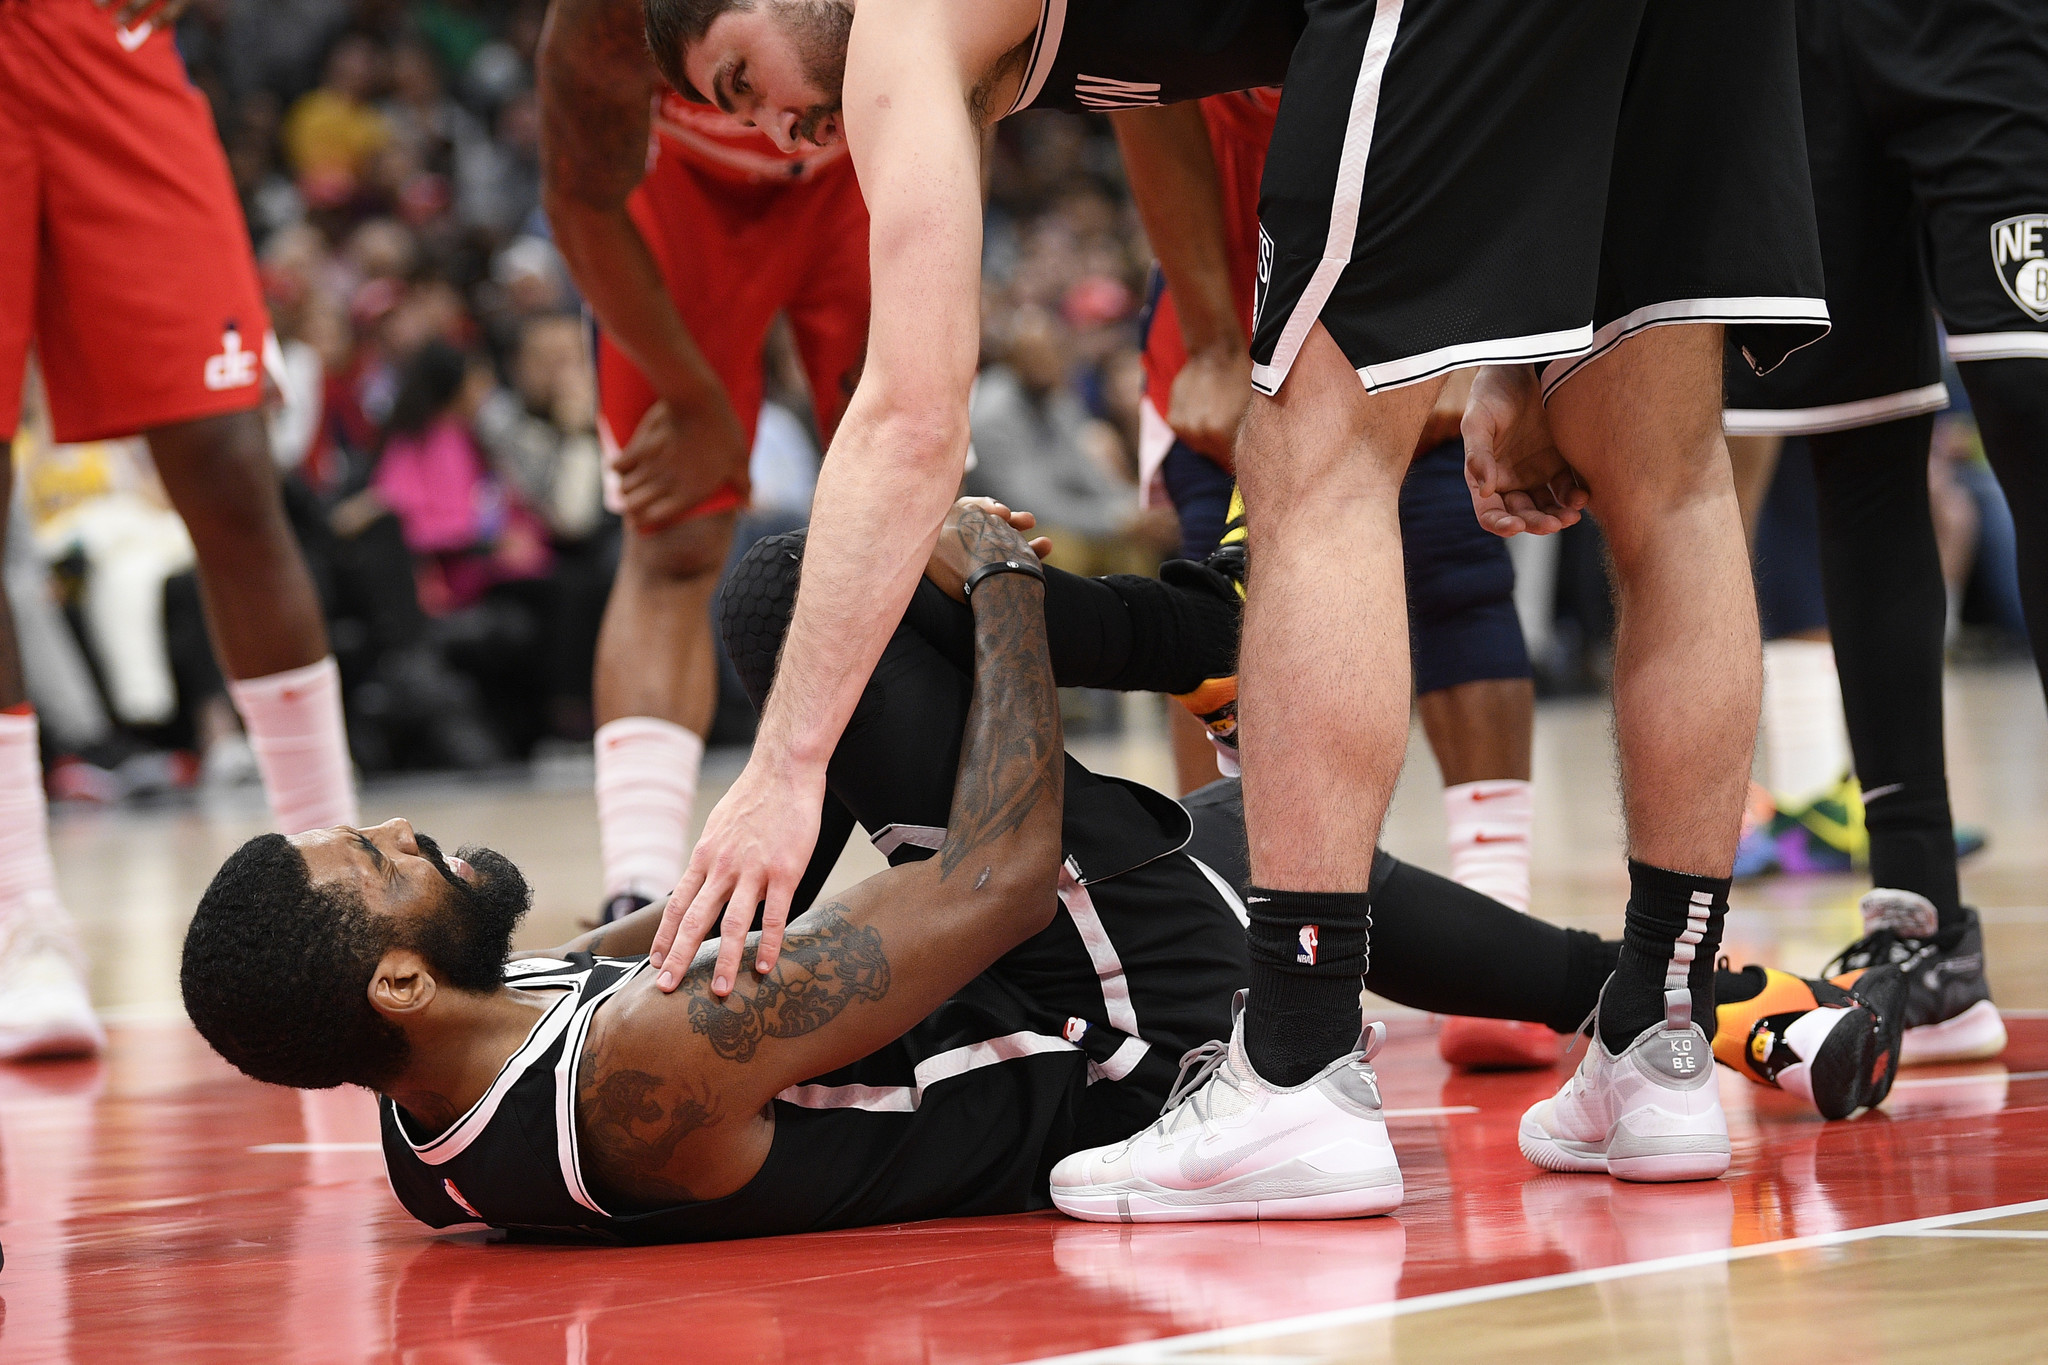 Kenny Atkinson says Nets will reevaluate Kyrie Irving's knee injury after the All-Star break